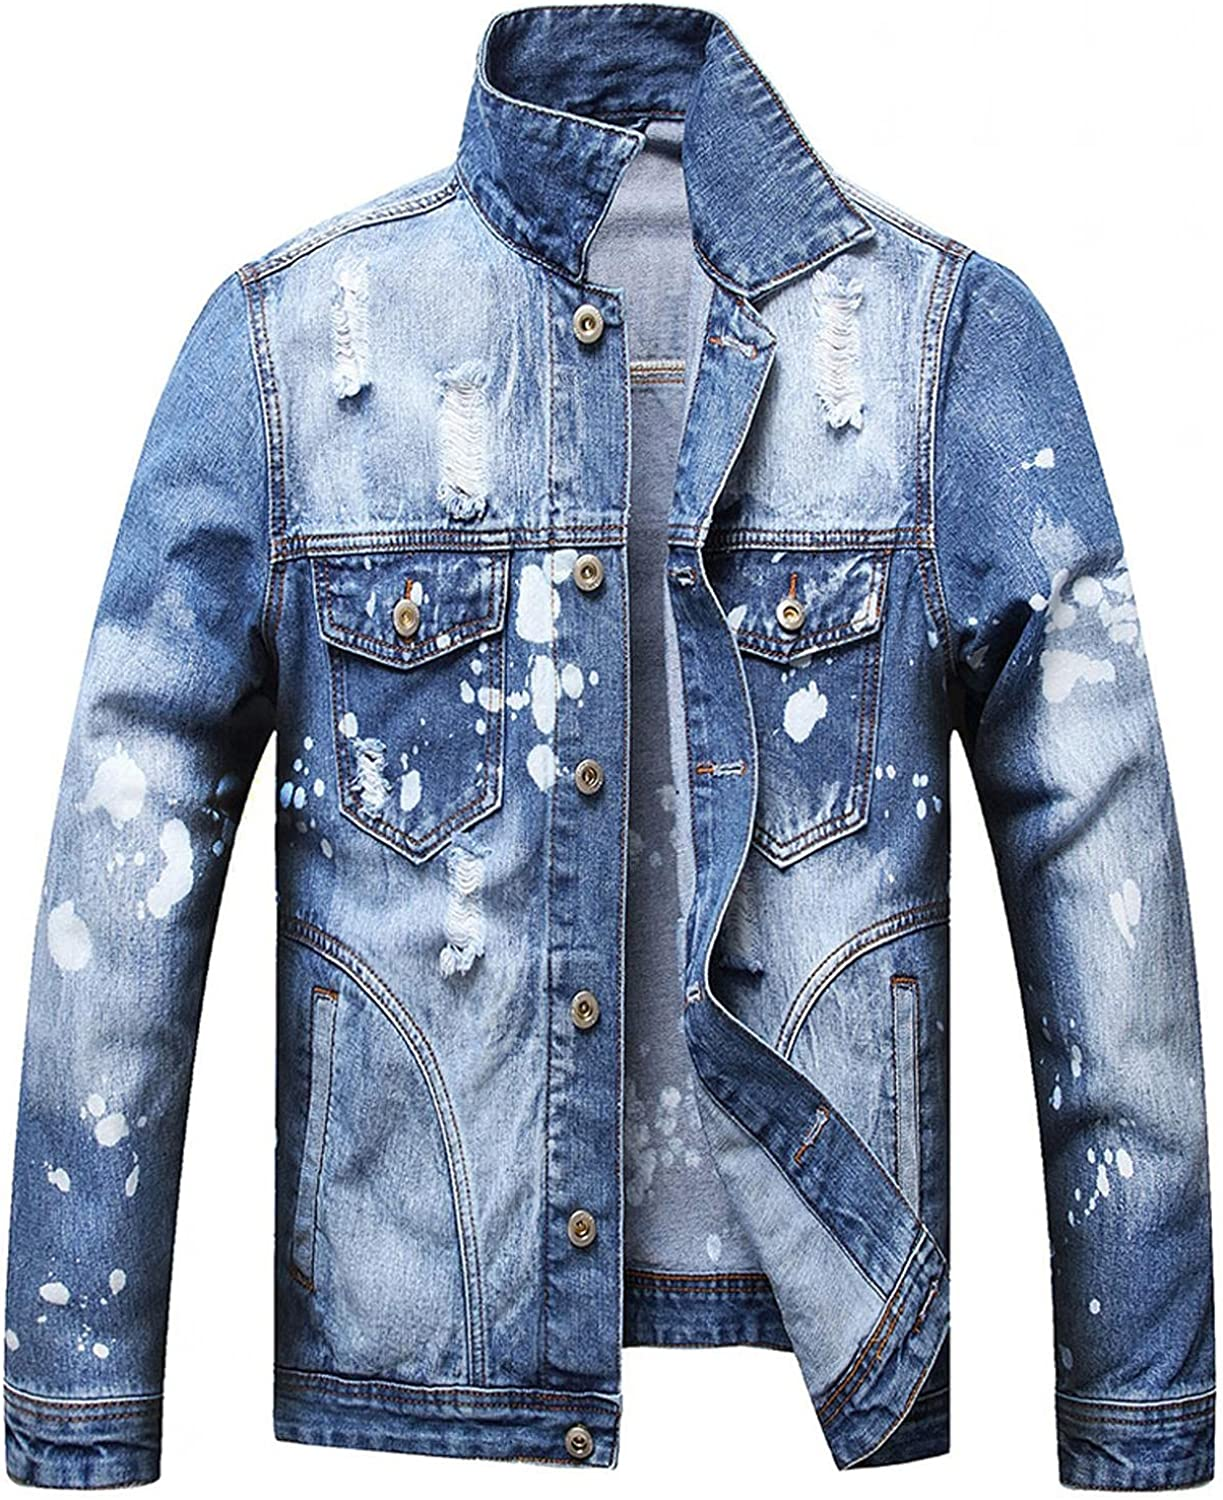 FUNEY Jean Jacket for Mens Casual Classic Ripped Distressed Denim Jacket Men Slim Fit Jackets Coat Tops with Holes